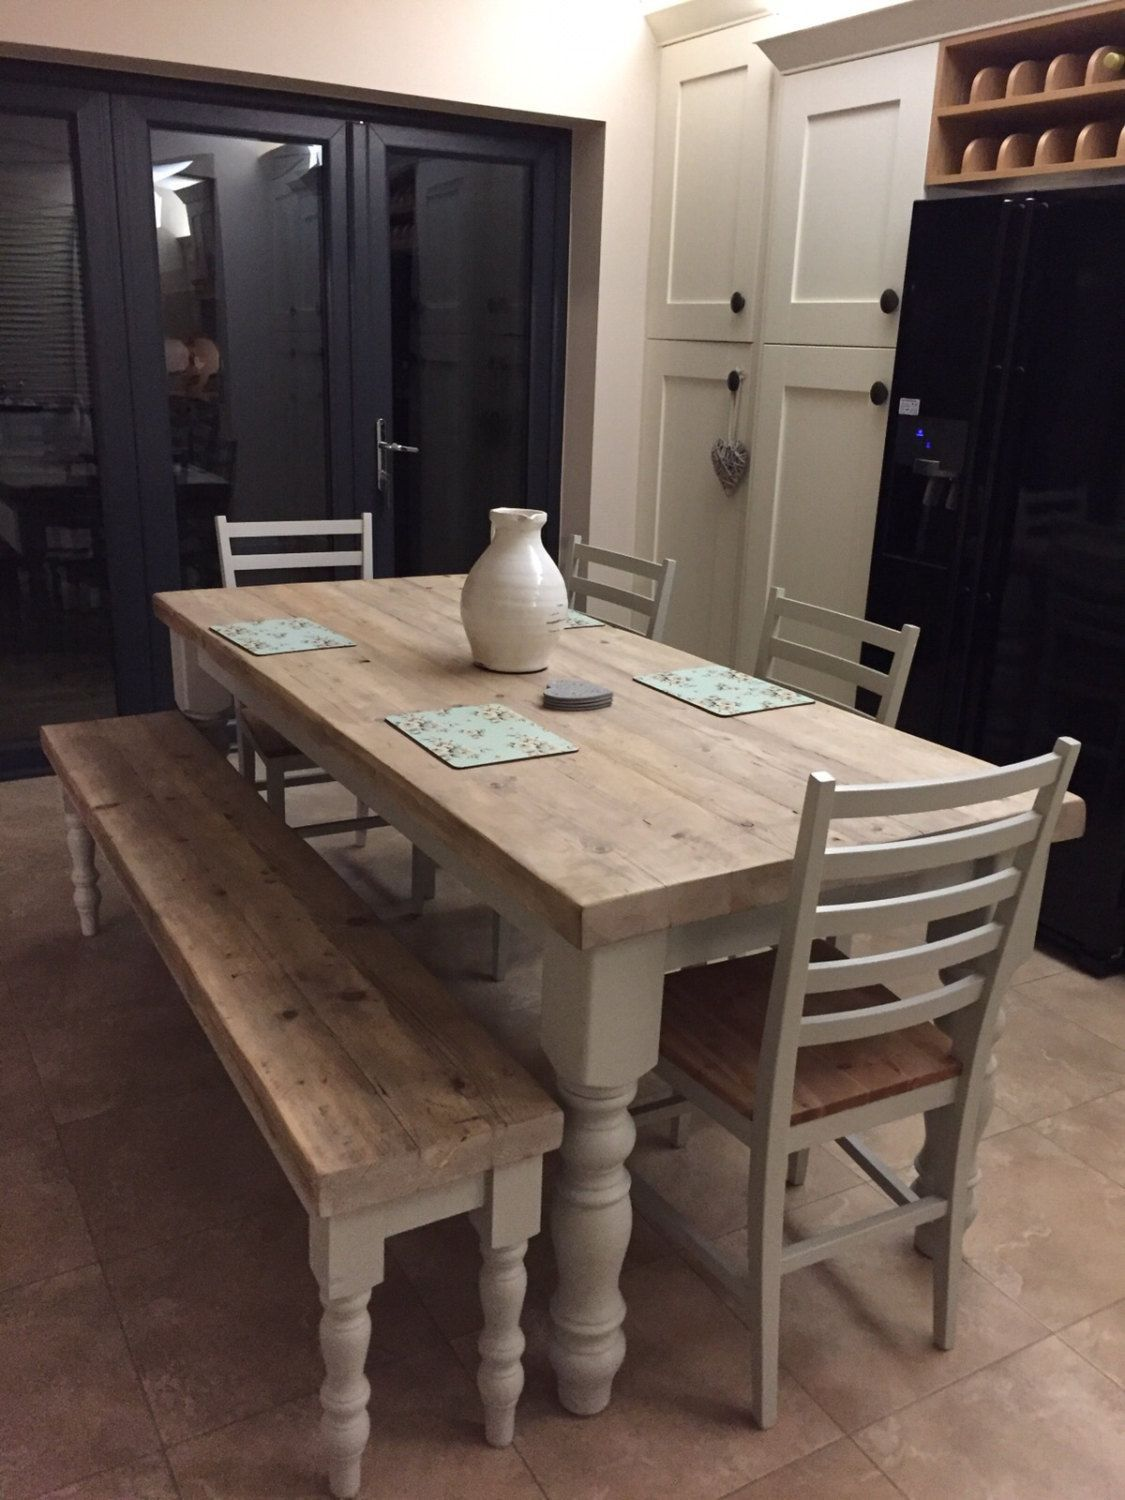 Farmhouse Dining Table With Reclaimed Wood Top And Bench Made To Measure Custom Restaurant